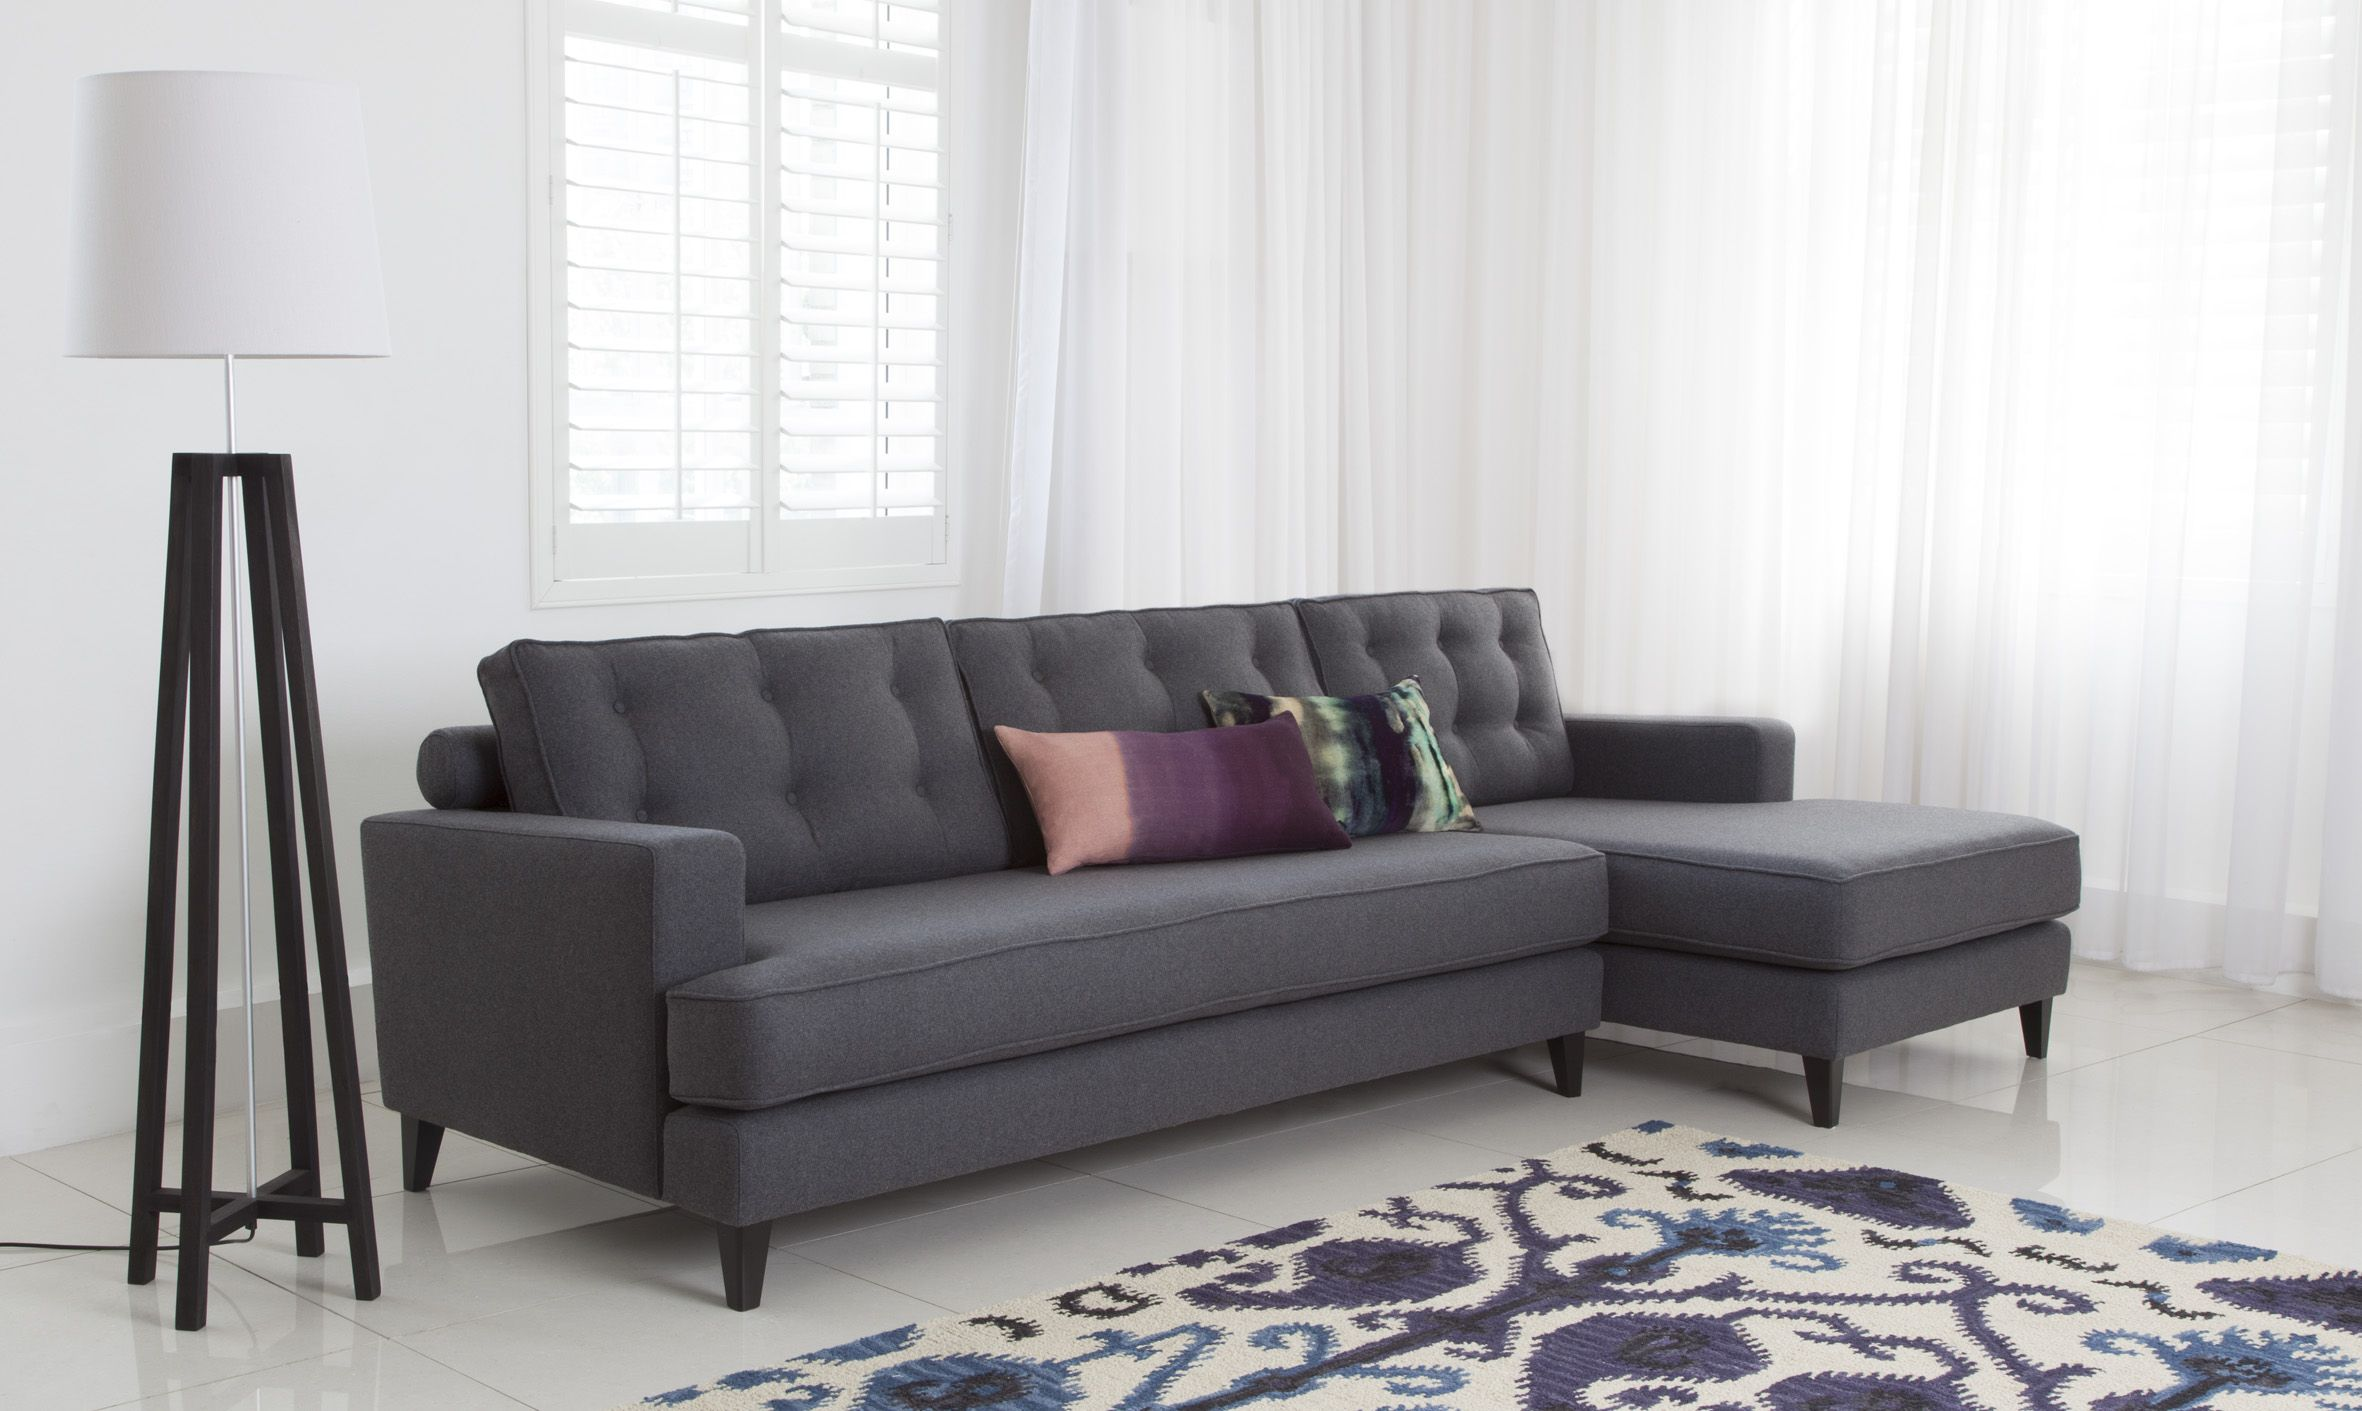 The Mistral Sofa By Roger Lewis Furniture Available From Heals | Corner Sofa Chaise, Living Room Update, Living Room Sofa Design